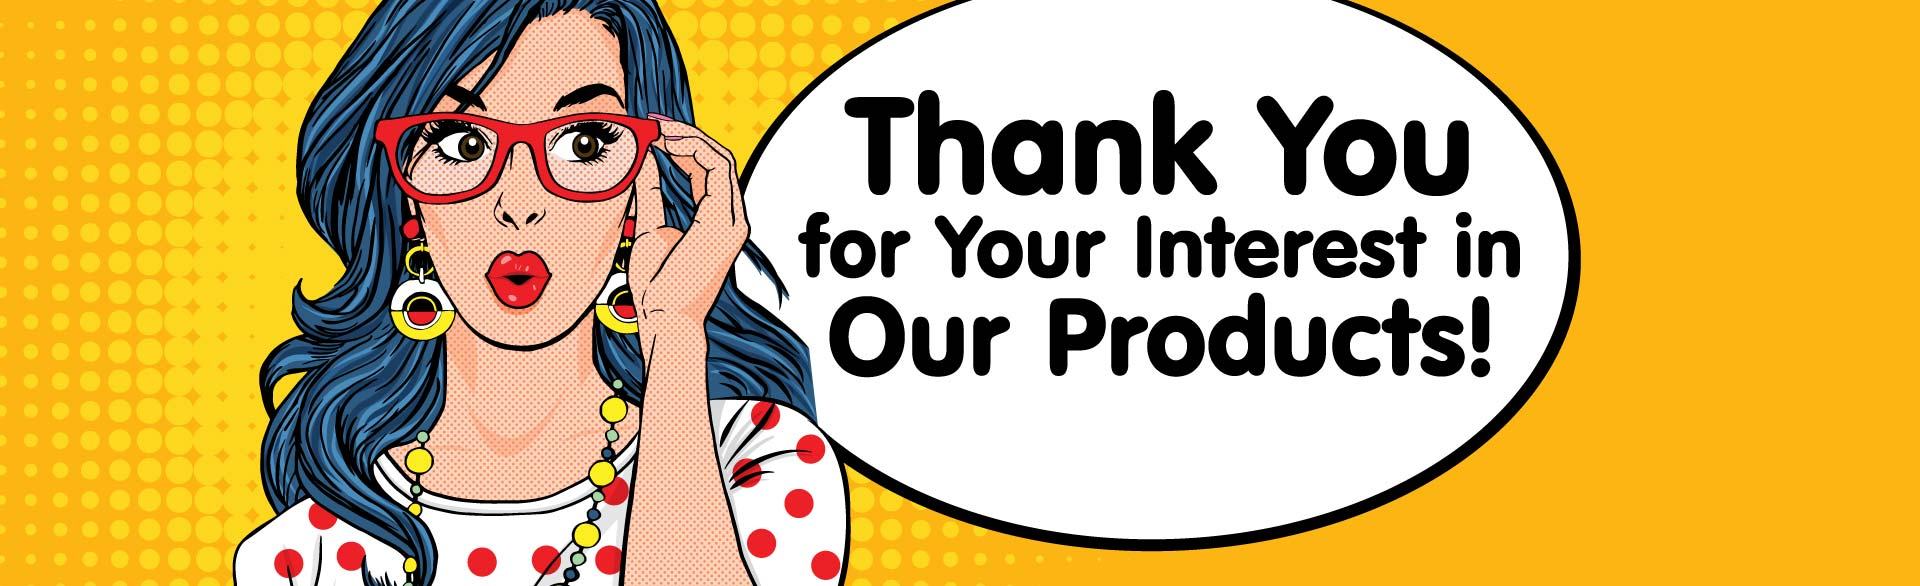 Thank You for Your Interest in Our Products!